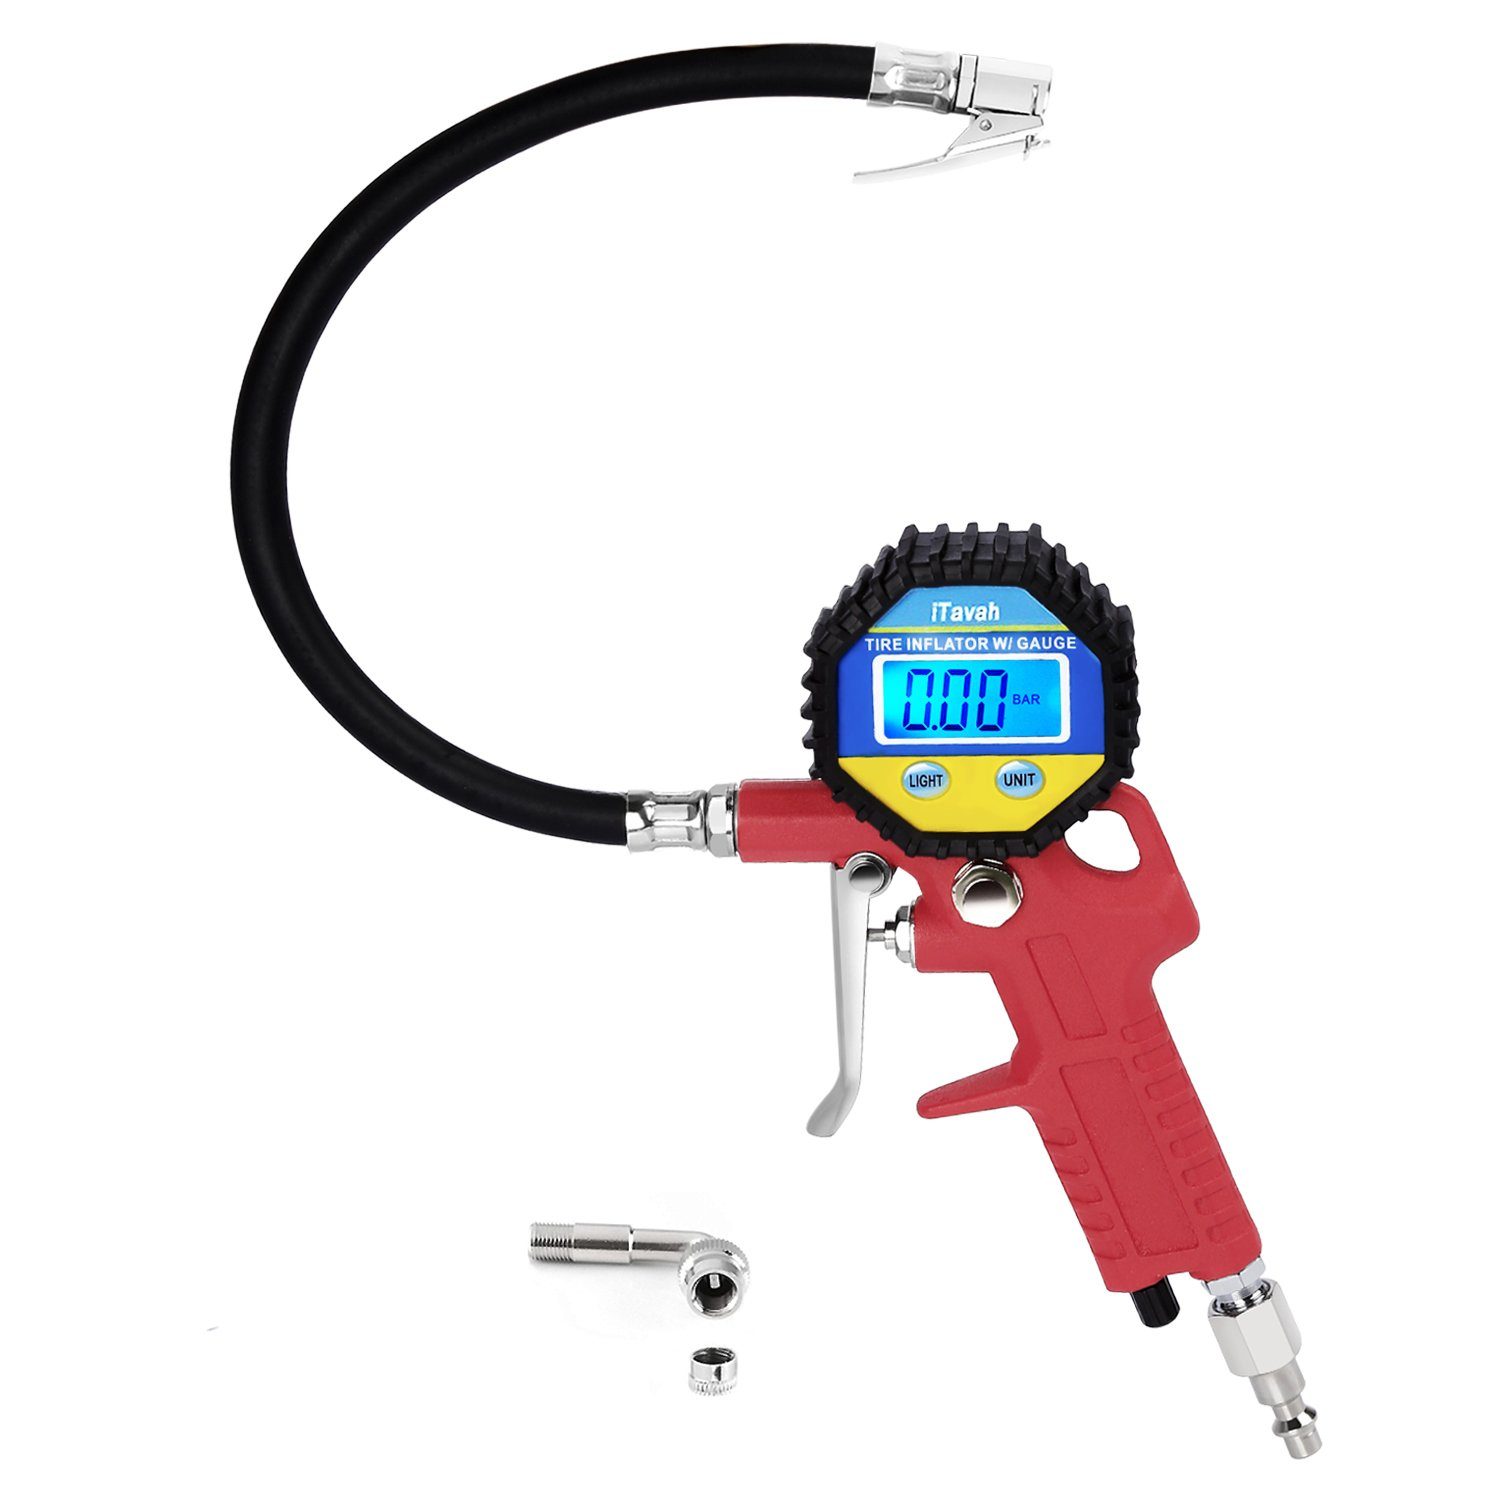 iTavah (Upgraded) Digital Tire Pressure Gauge, Integrated Closed, Straight Lock-On Air Chuck, LCD Backlit Screen,Tire Inflator with 90 Degree Hose 4333466905